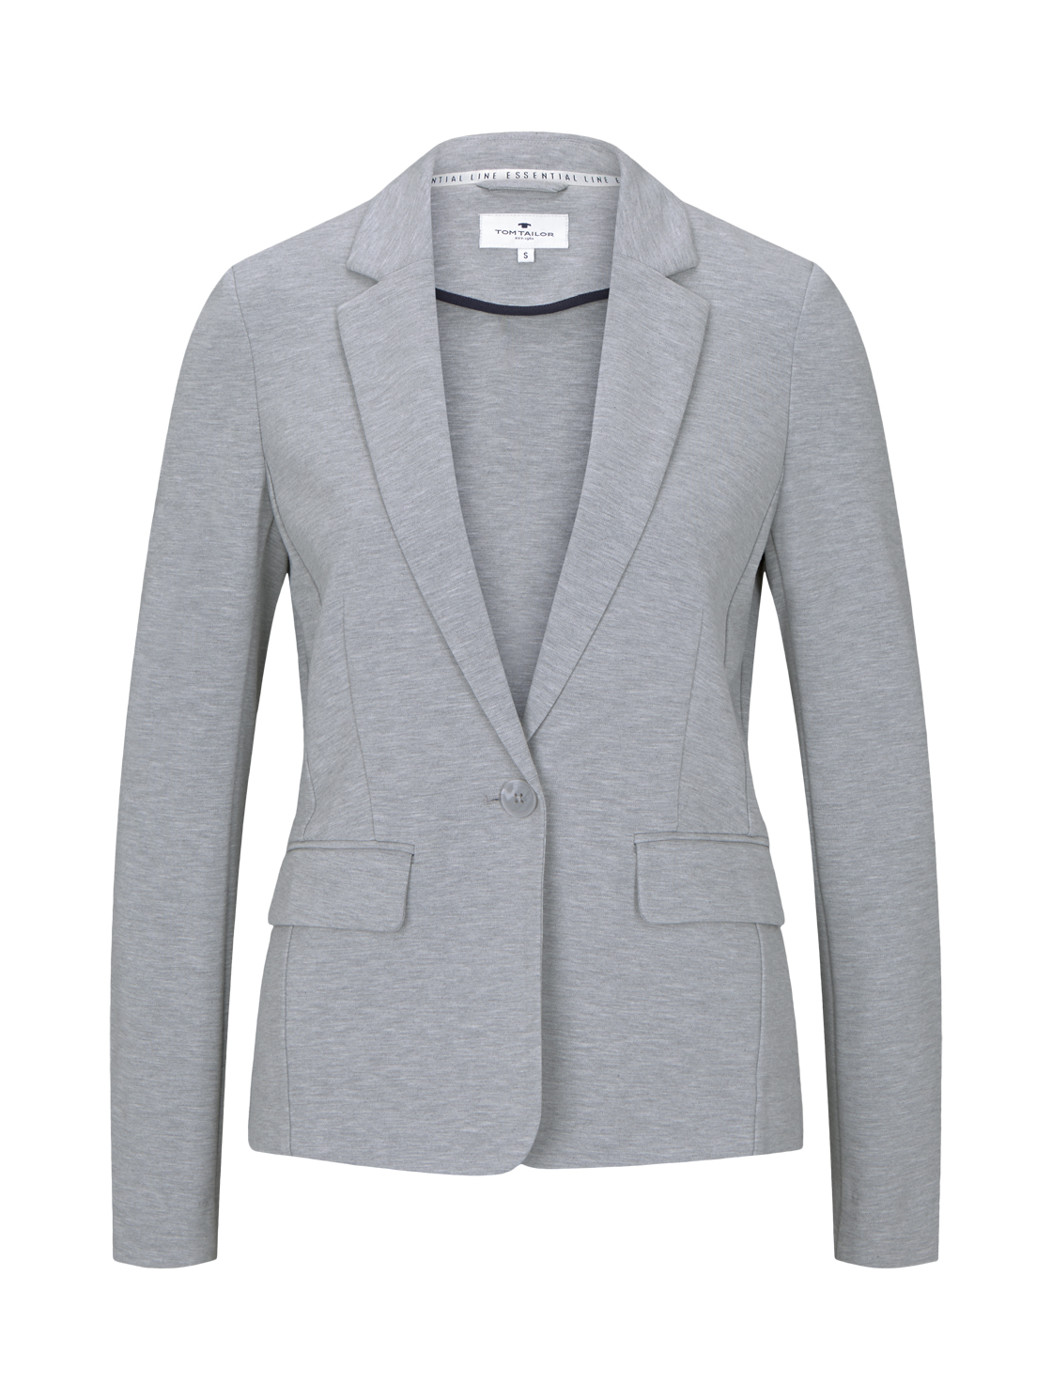 blazer with lapel collar - Damen